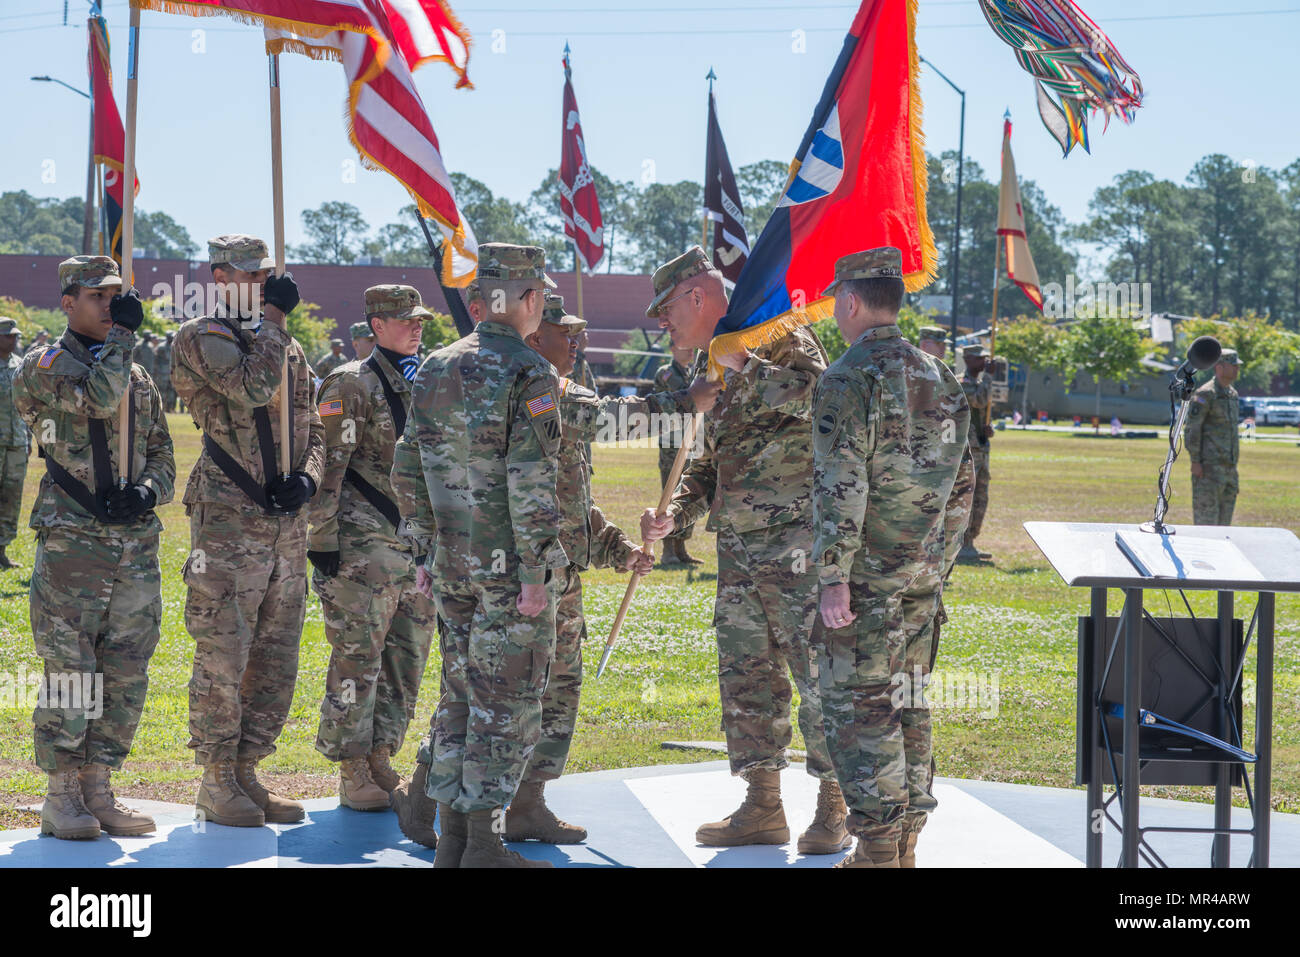 Command Sgt. Maj. Walter Tagalicud, left, 3rd Infantry Division command sergeant major, passes the division colors to outgoing commander, Maj. Gen. James Rainey. The 3rd Infantry Division change of command ceremony was held on Cotrell Field at Fort Stewart, GA, May 8, 2017. Maj. Gen. Leopoldo Quintas assumed command. (U.S. Army Photo by Lt. Col. Brian J. Fickel) - Stock Image